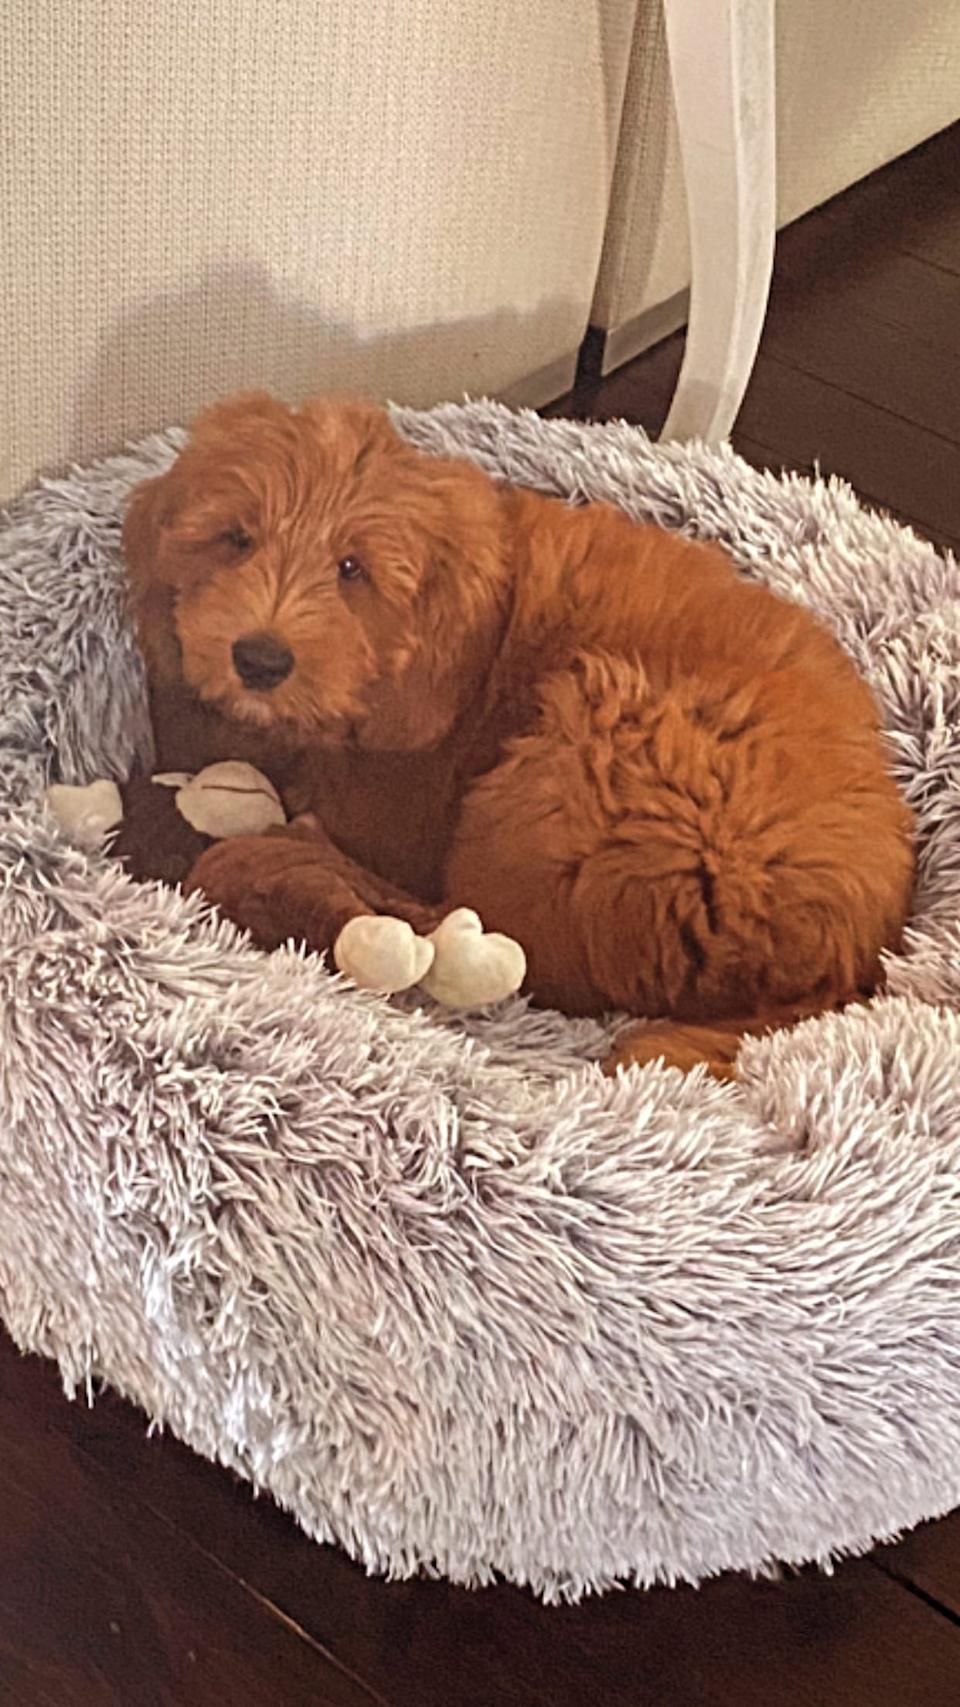 Fred is a 10-week-old pure breed Labradoodle. Photo: Instagram/fredthecobberdog.